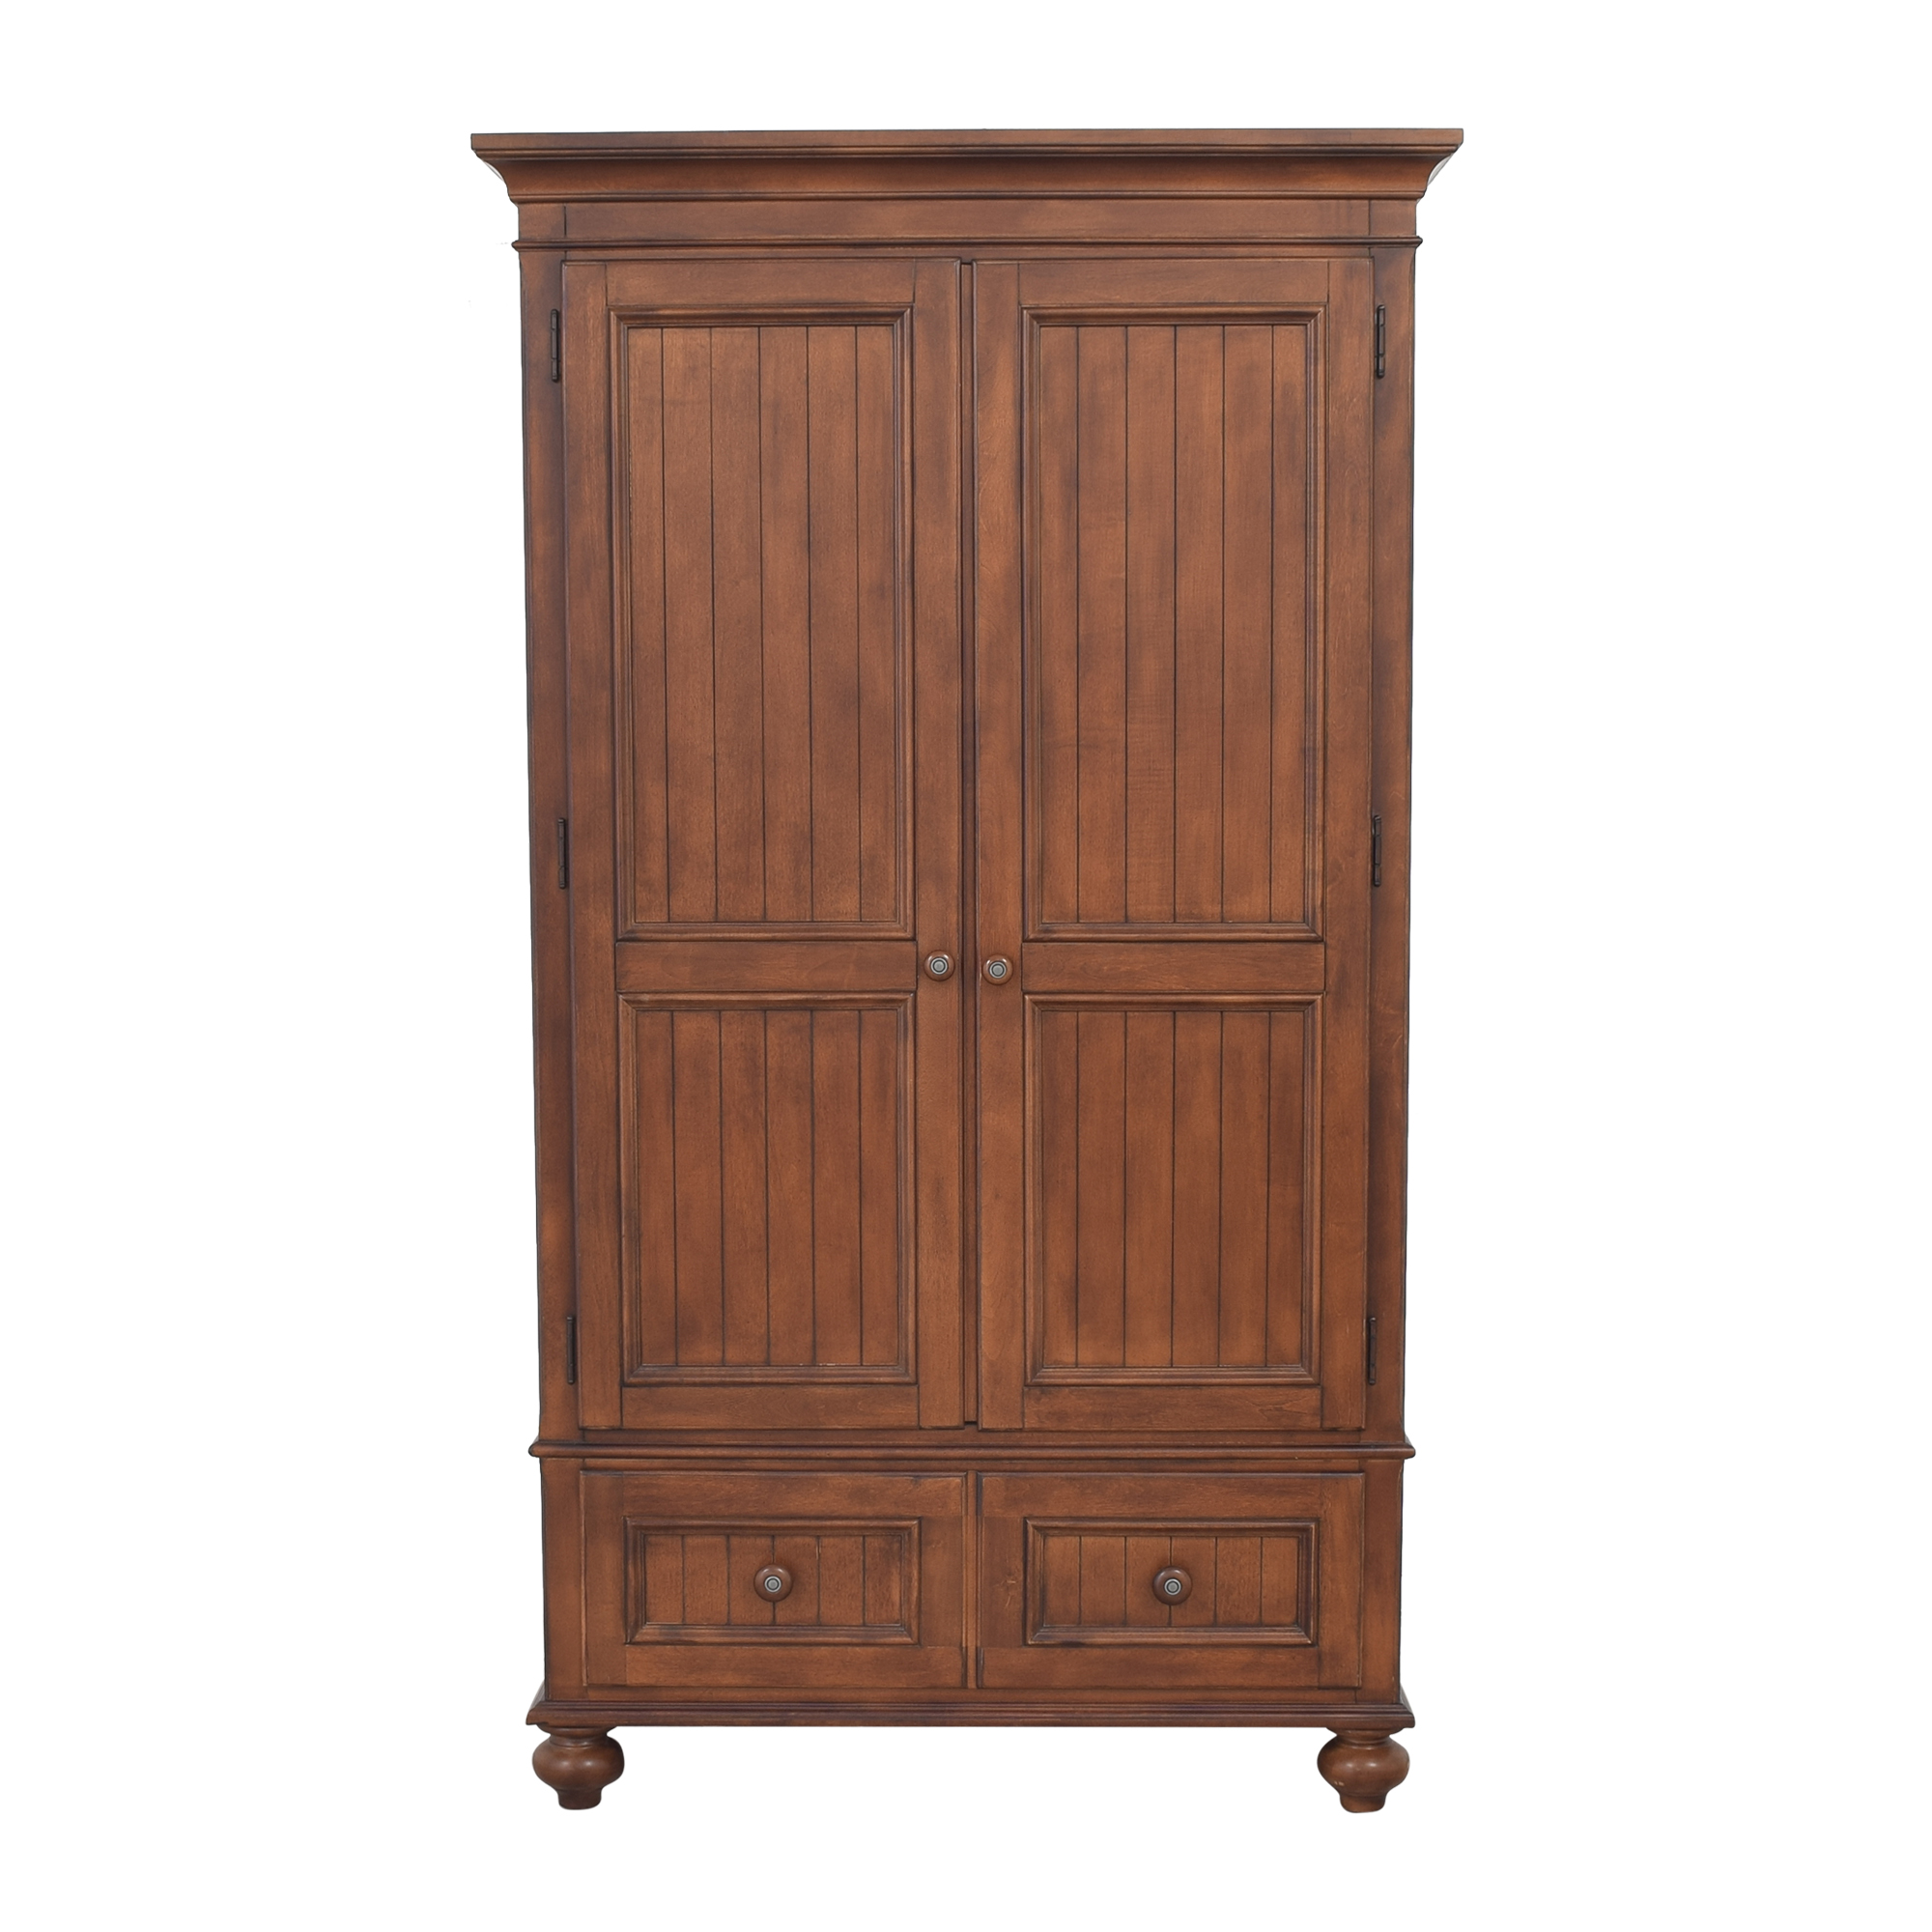 Ethan Allen Ethan Allen Cottage Style Armoire price